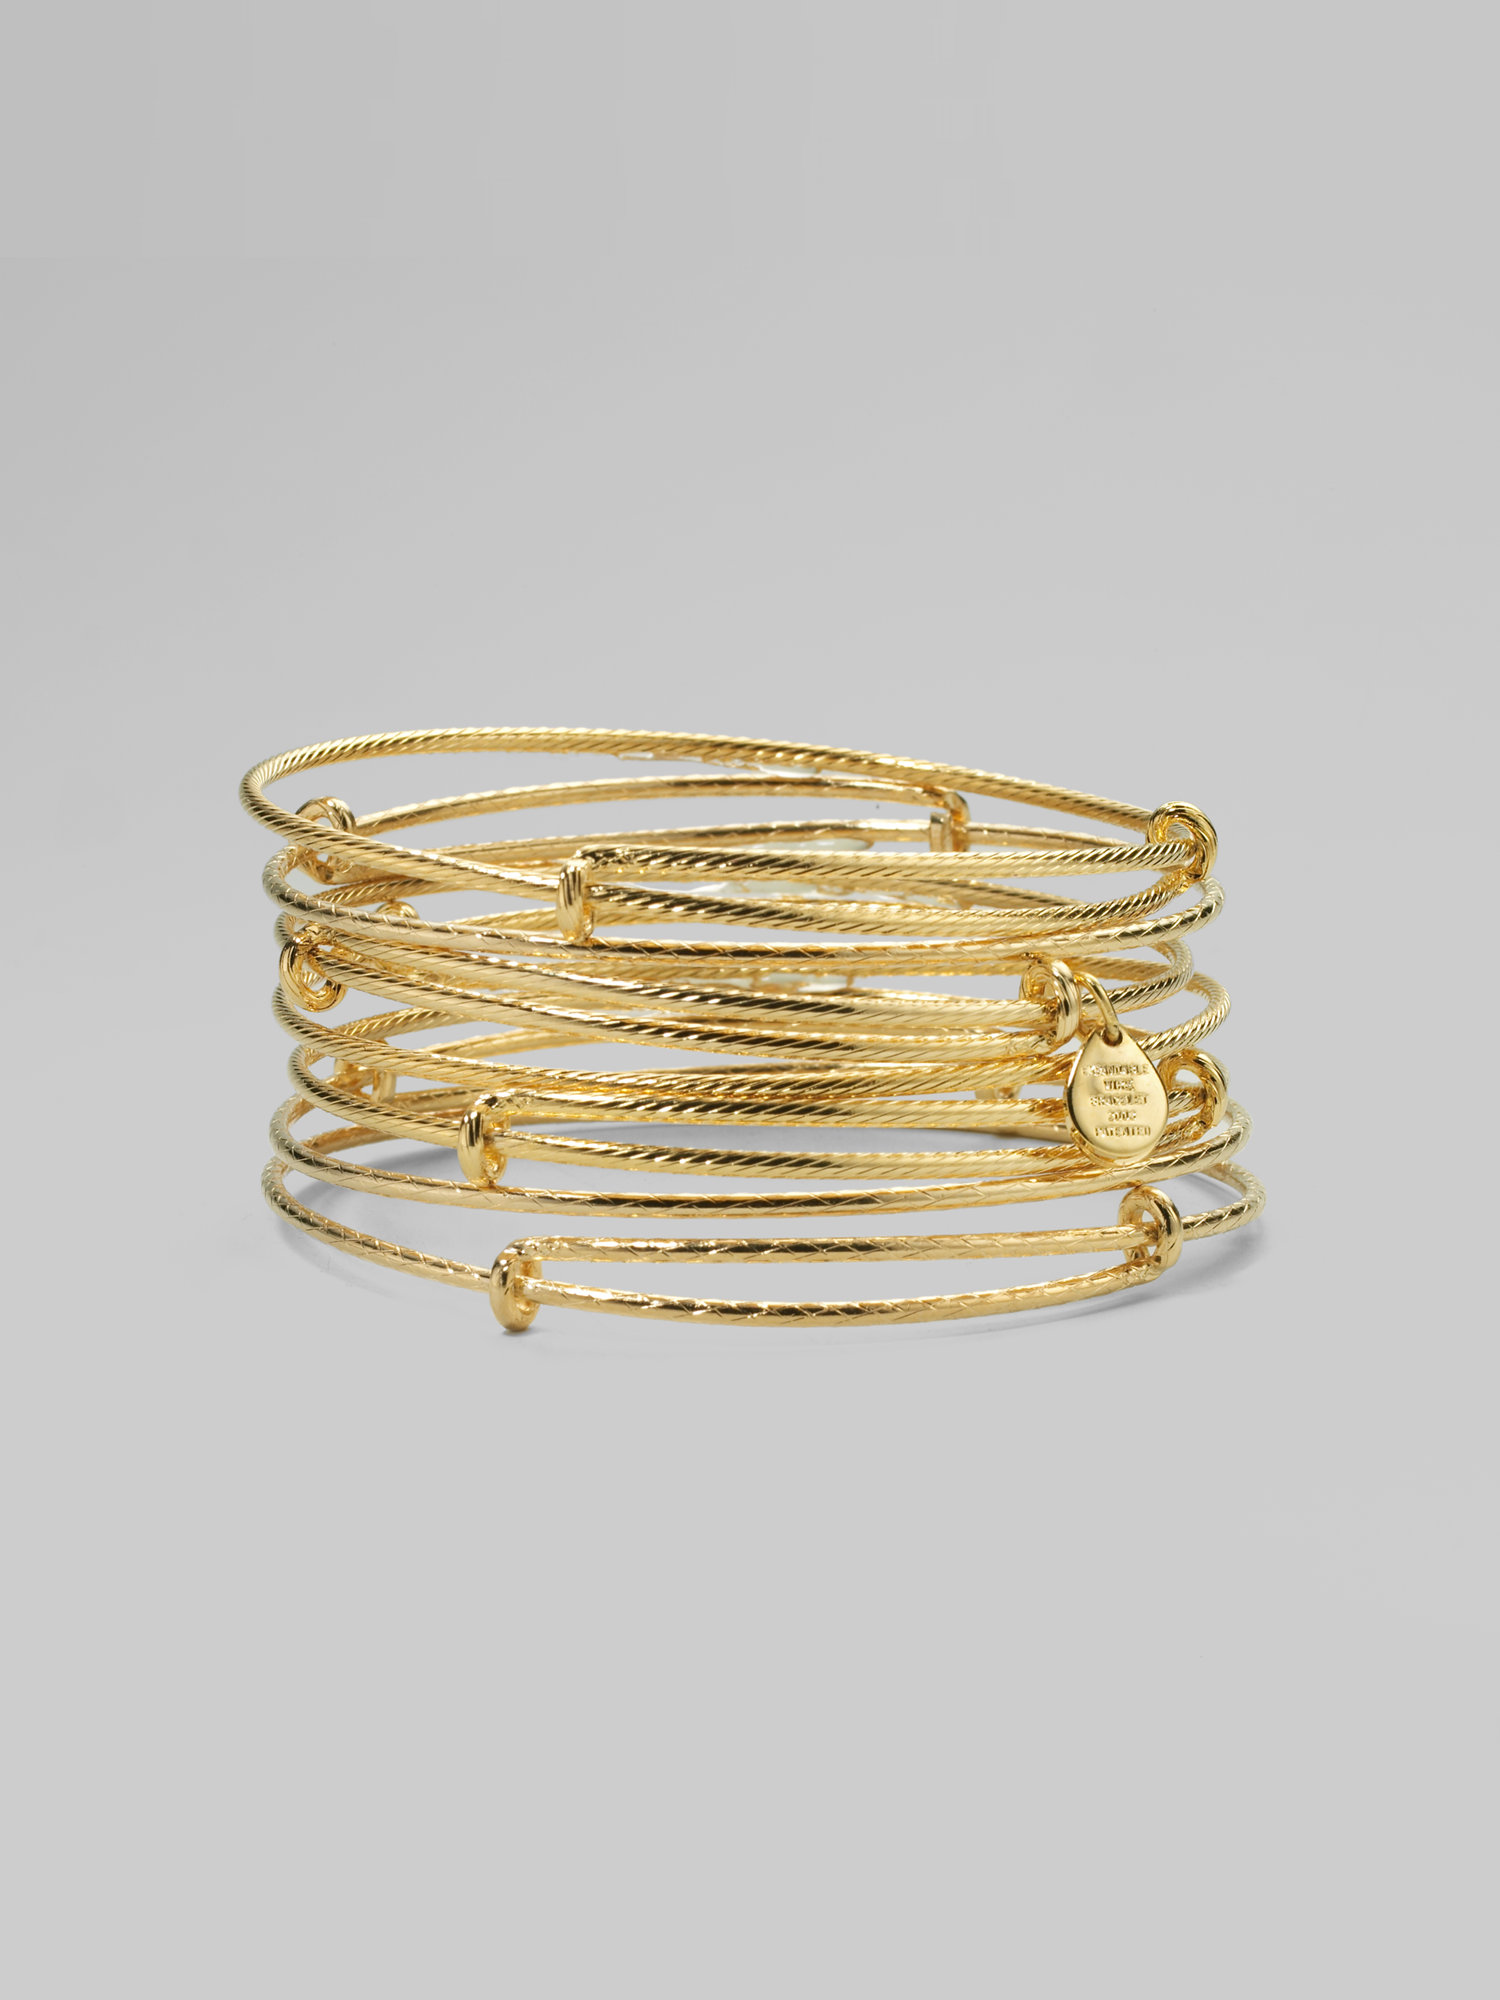 Lyst - Alex And Ani Textured Expandable Wire Bracelet Set in Metallic